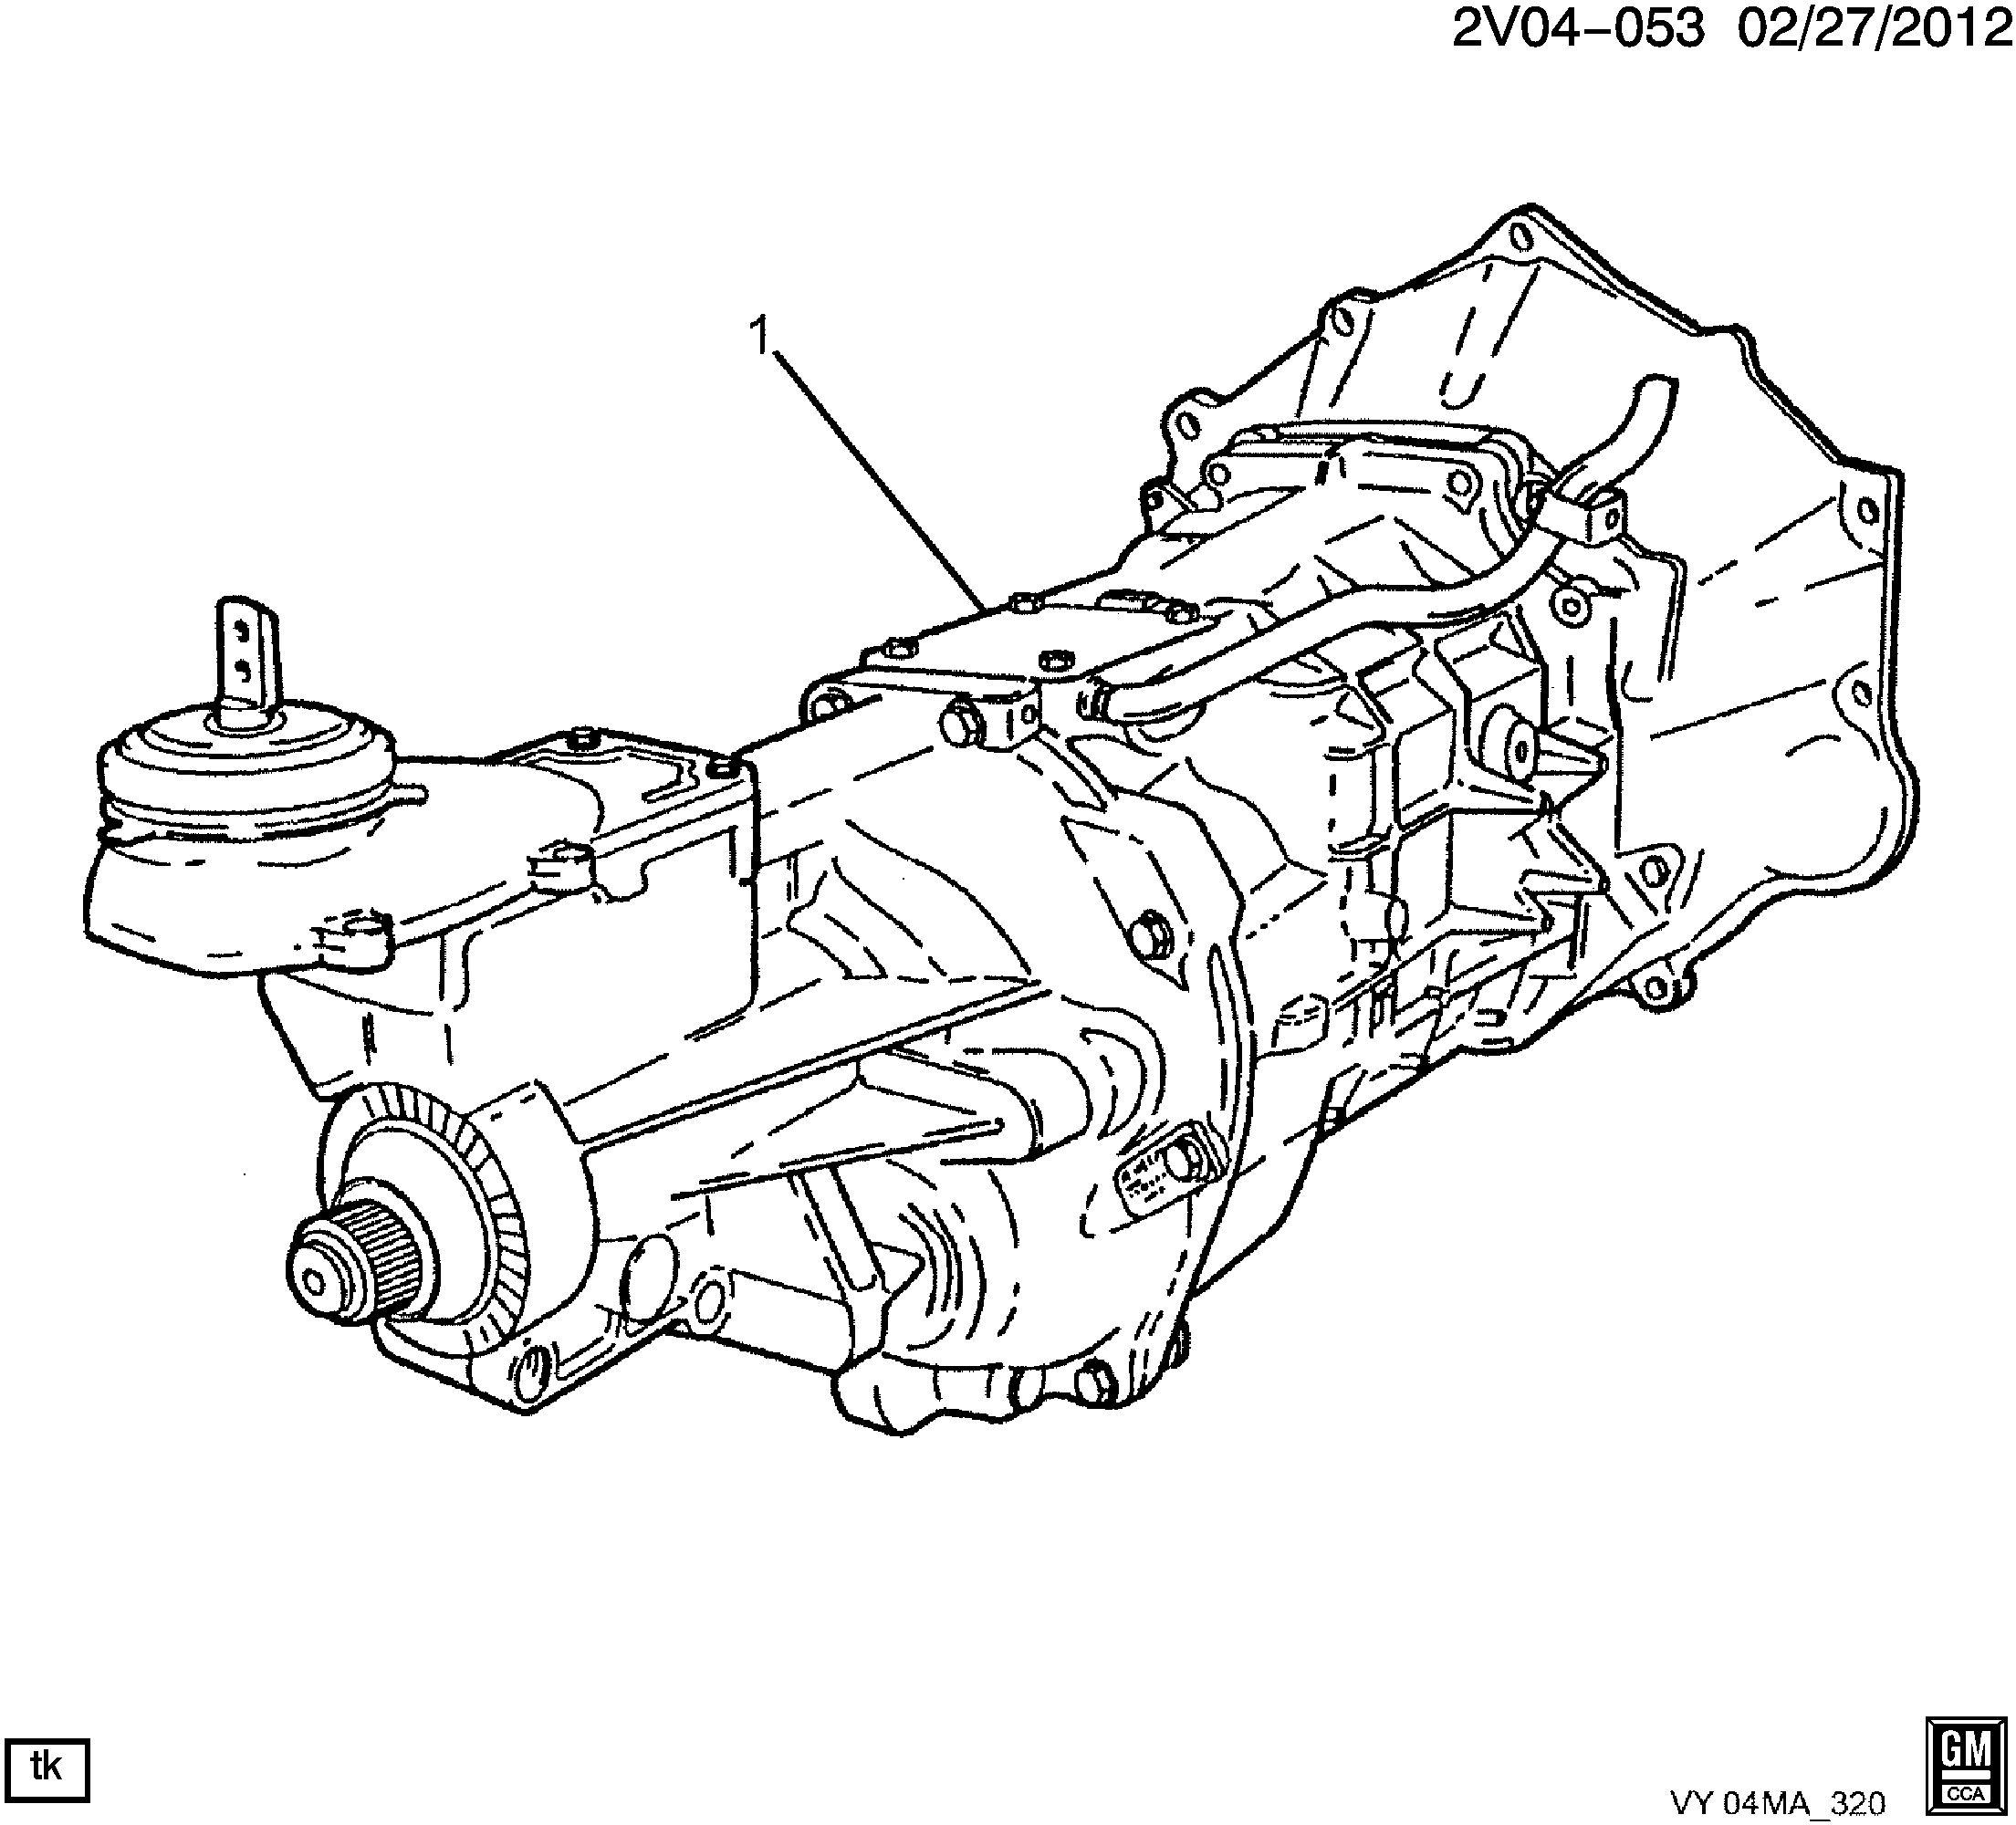 92155485 - Gm Transmission  Manual  6